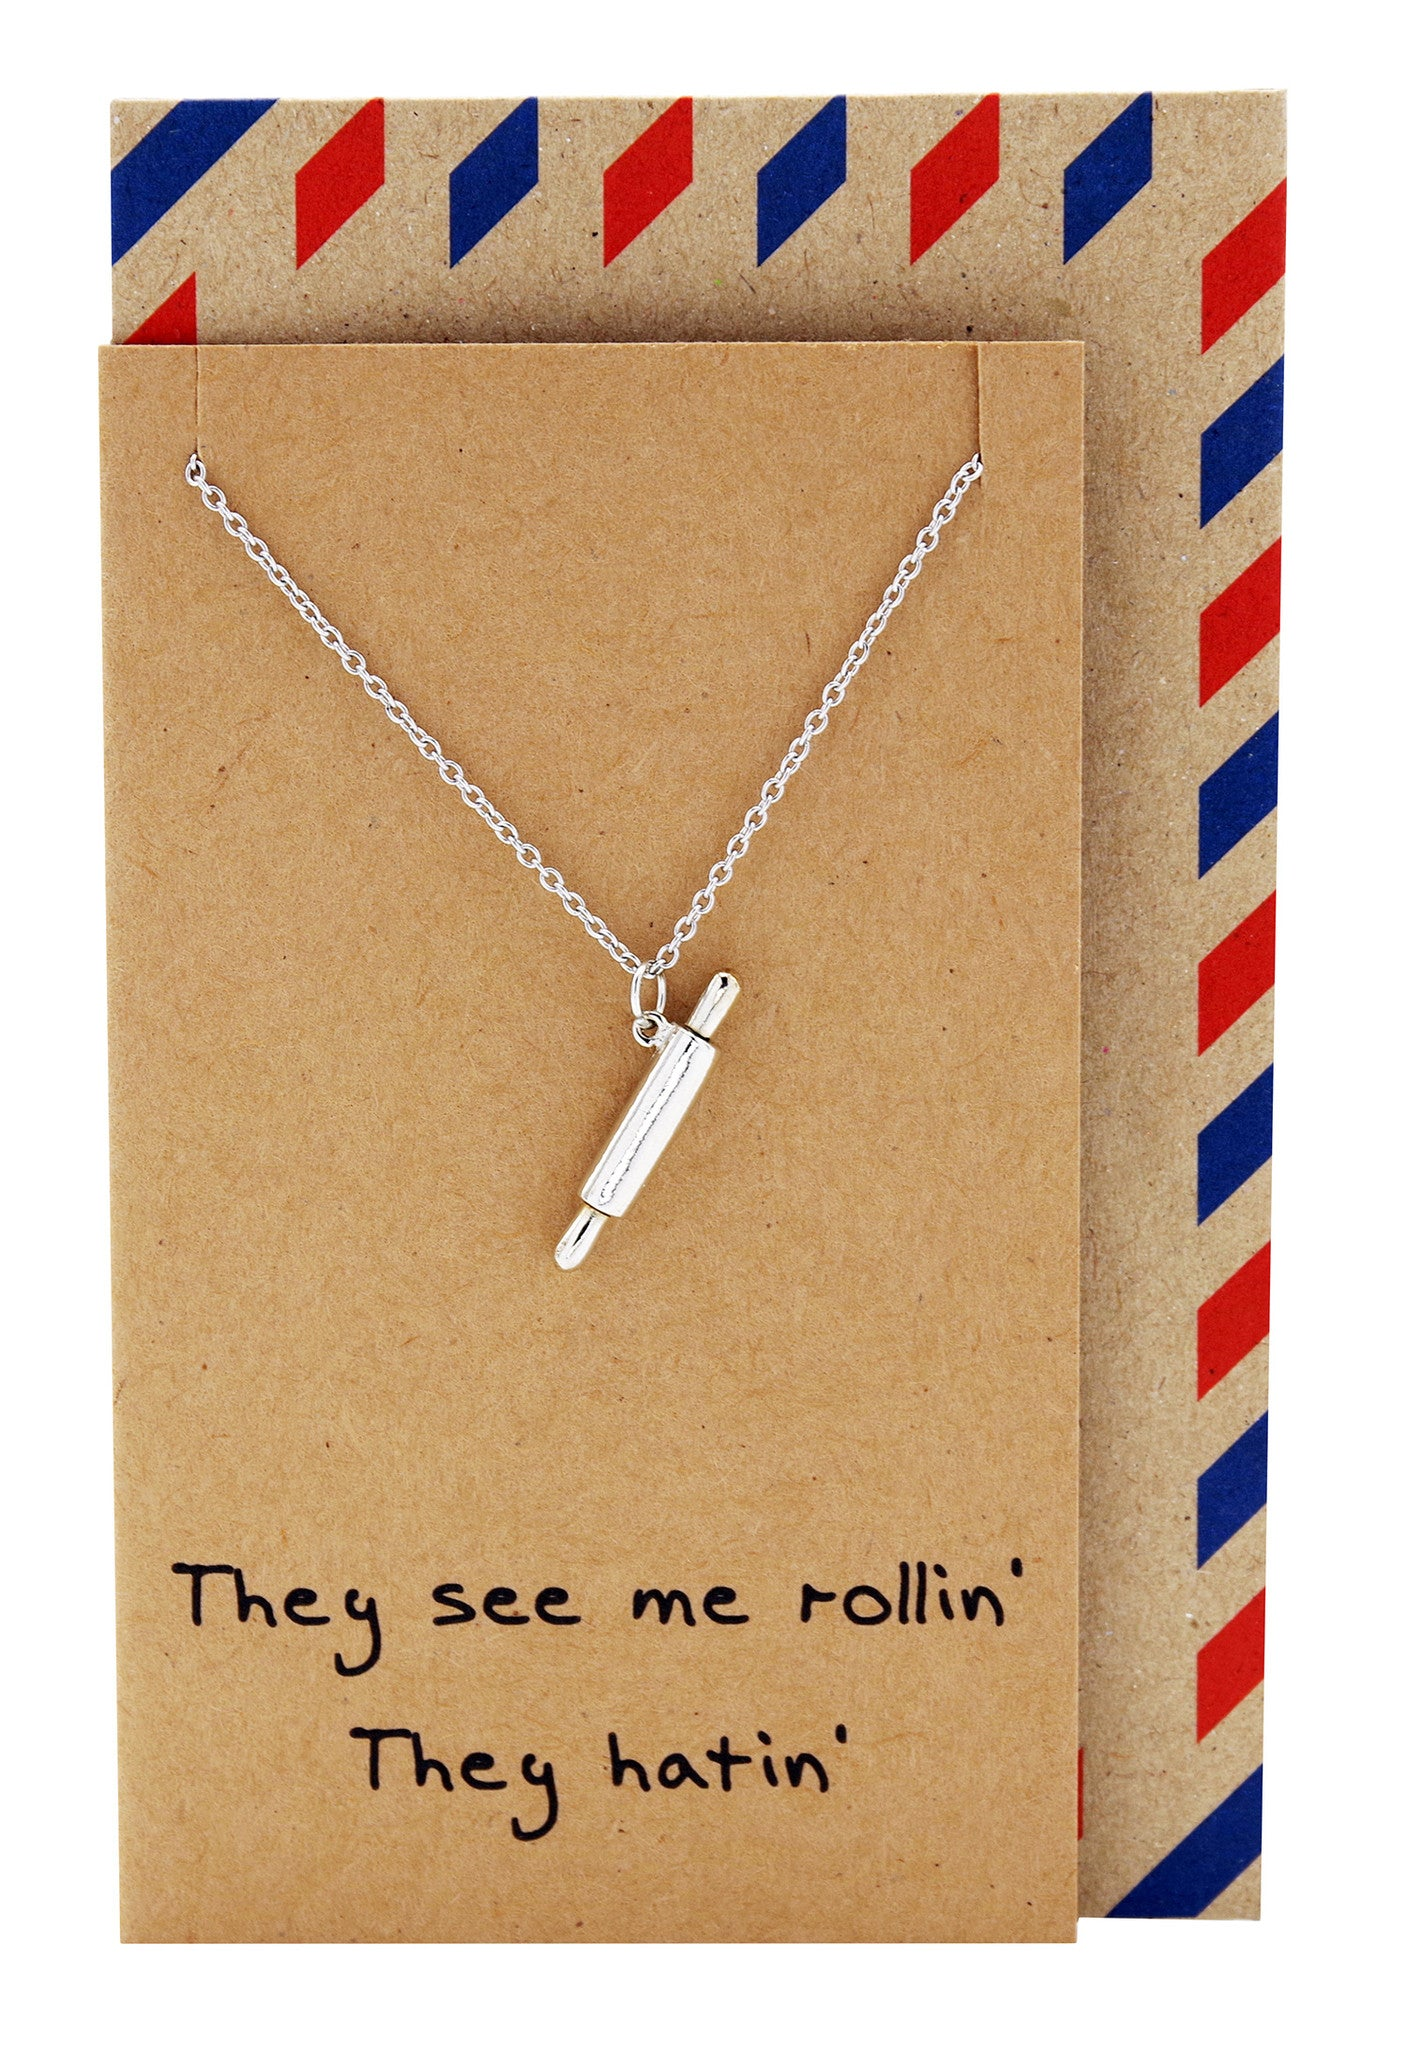 Rachel Chef Jewelry with Rolling Pin Pendant